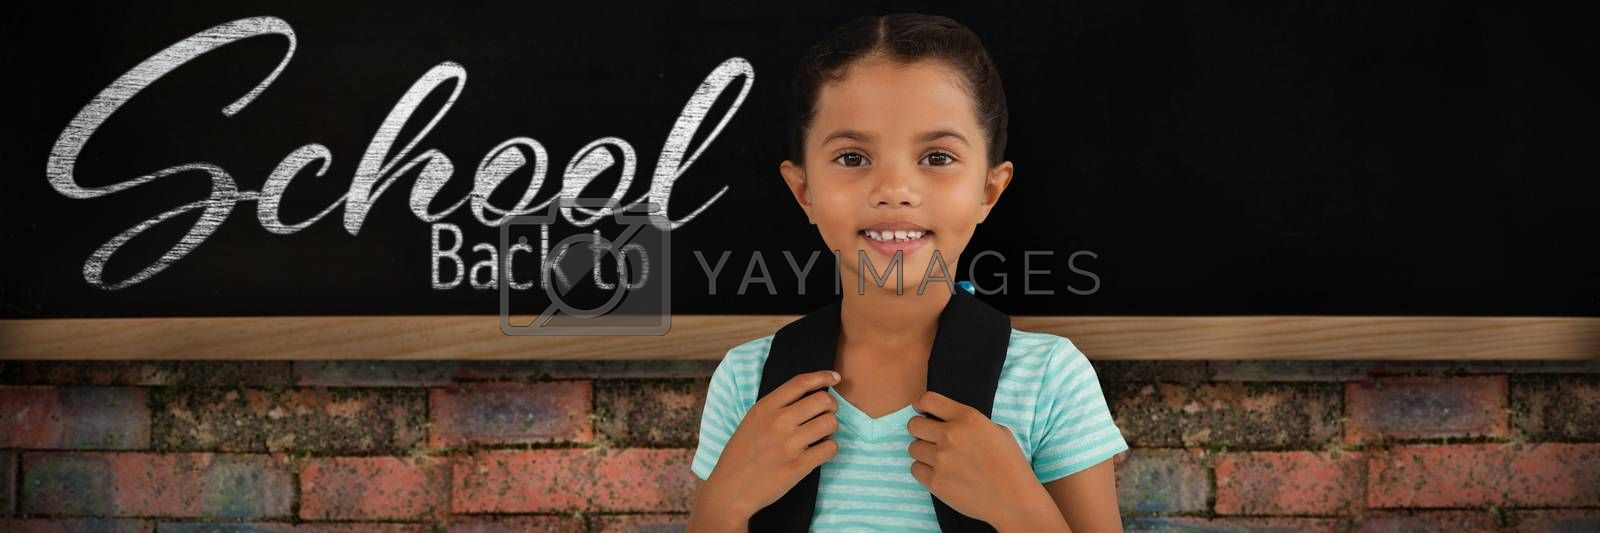 Composite image of portrait of smiling girl with bag by Wavebreakmedia